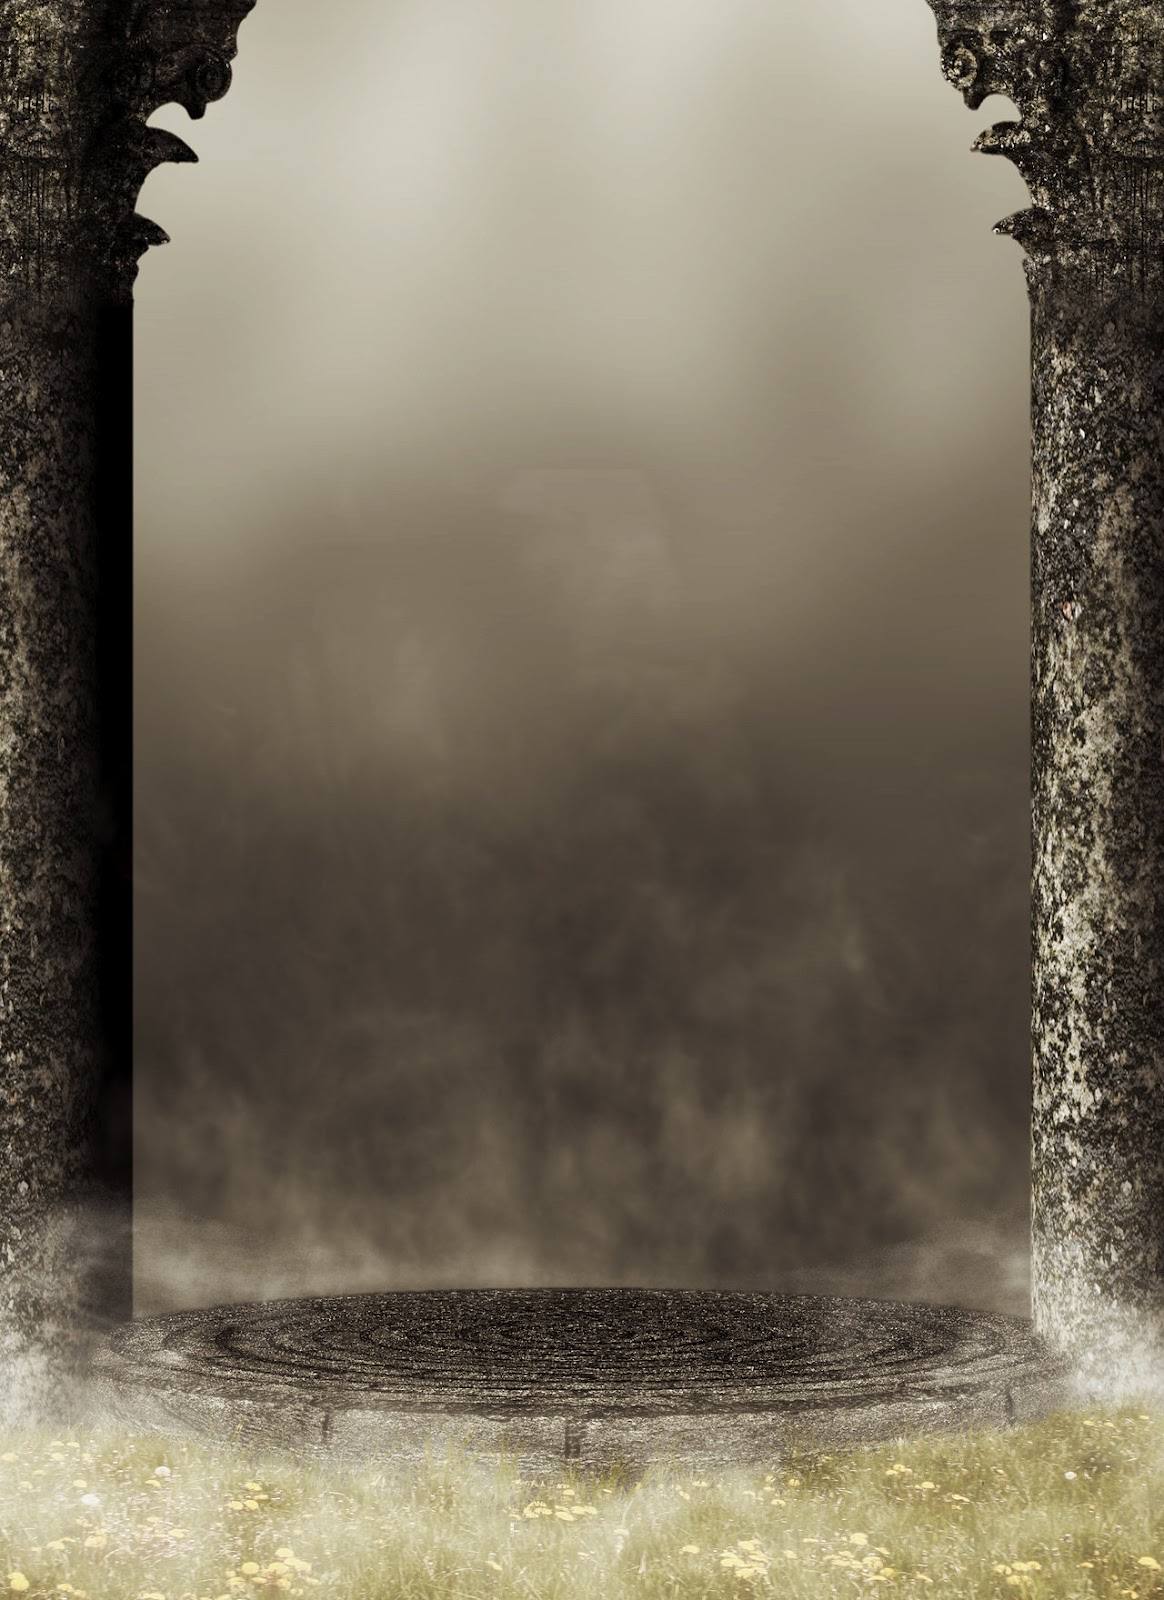 Pin night texture gothic backgrounds city images of for Premade columns